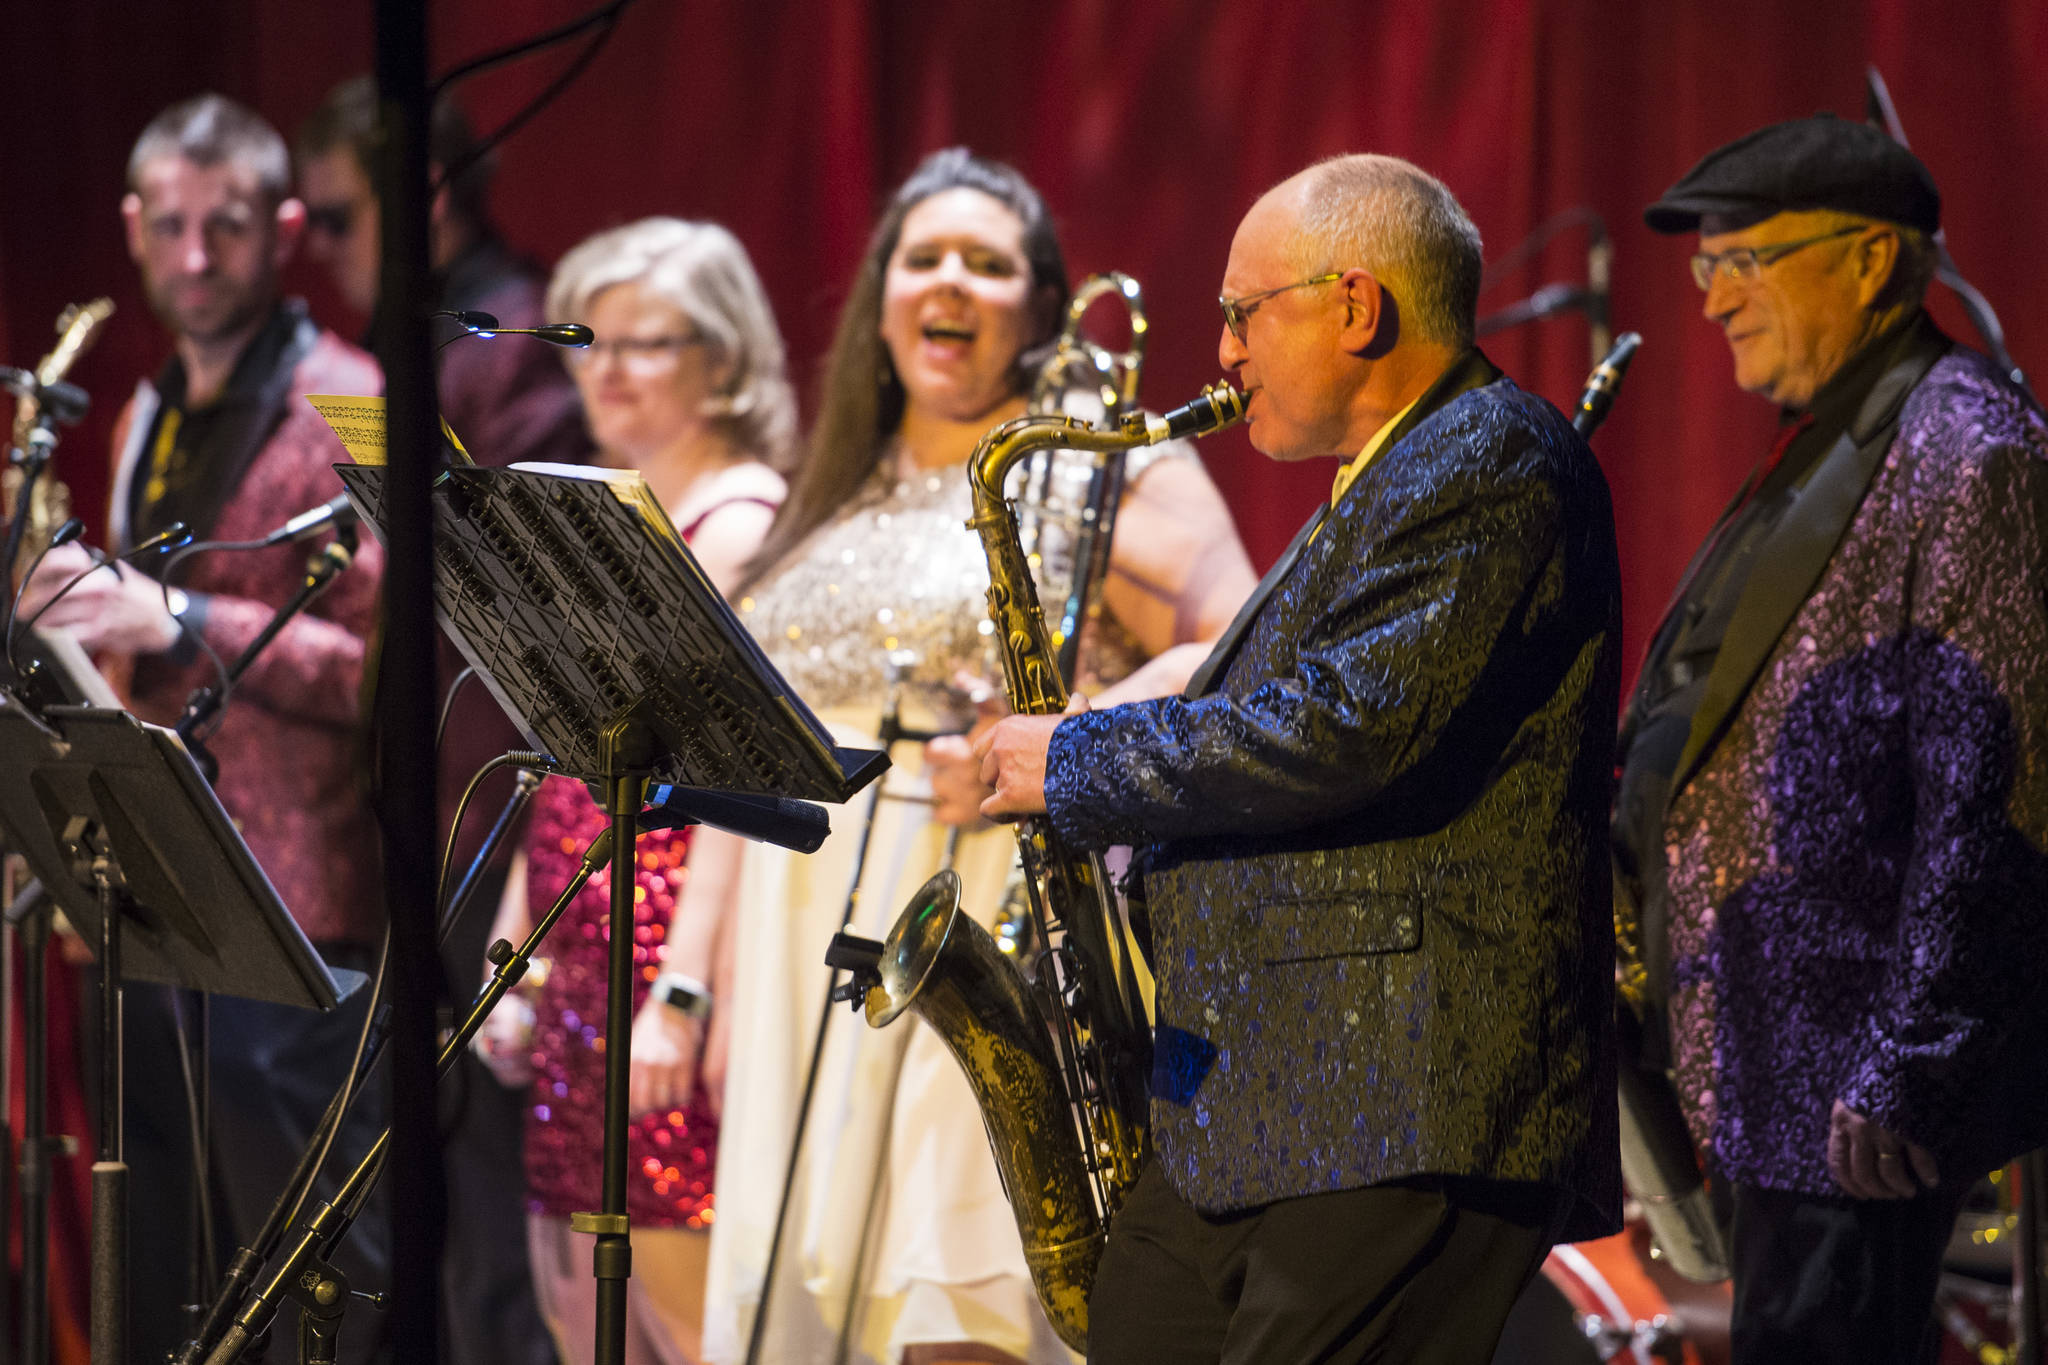 Saxophonist Doug Bridges performs a solo with the Gamble & High Costa Livin' during the New Year's Eve Gala at Centennial Hall on Monday, Dec. 31, 2018. The event was a fundraiser for the Juneau Arts and Humanities Council and Juneau Jazz & Classics. (Michael Penn   Juneau Empire)